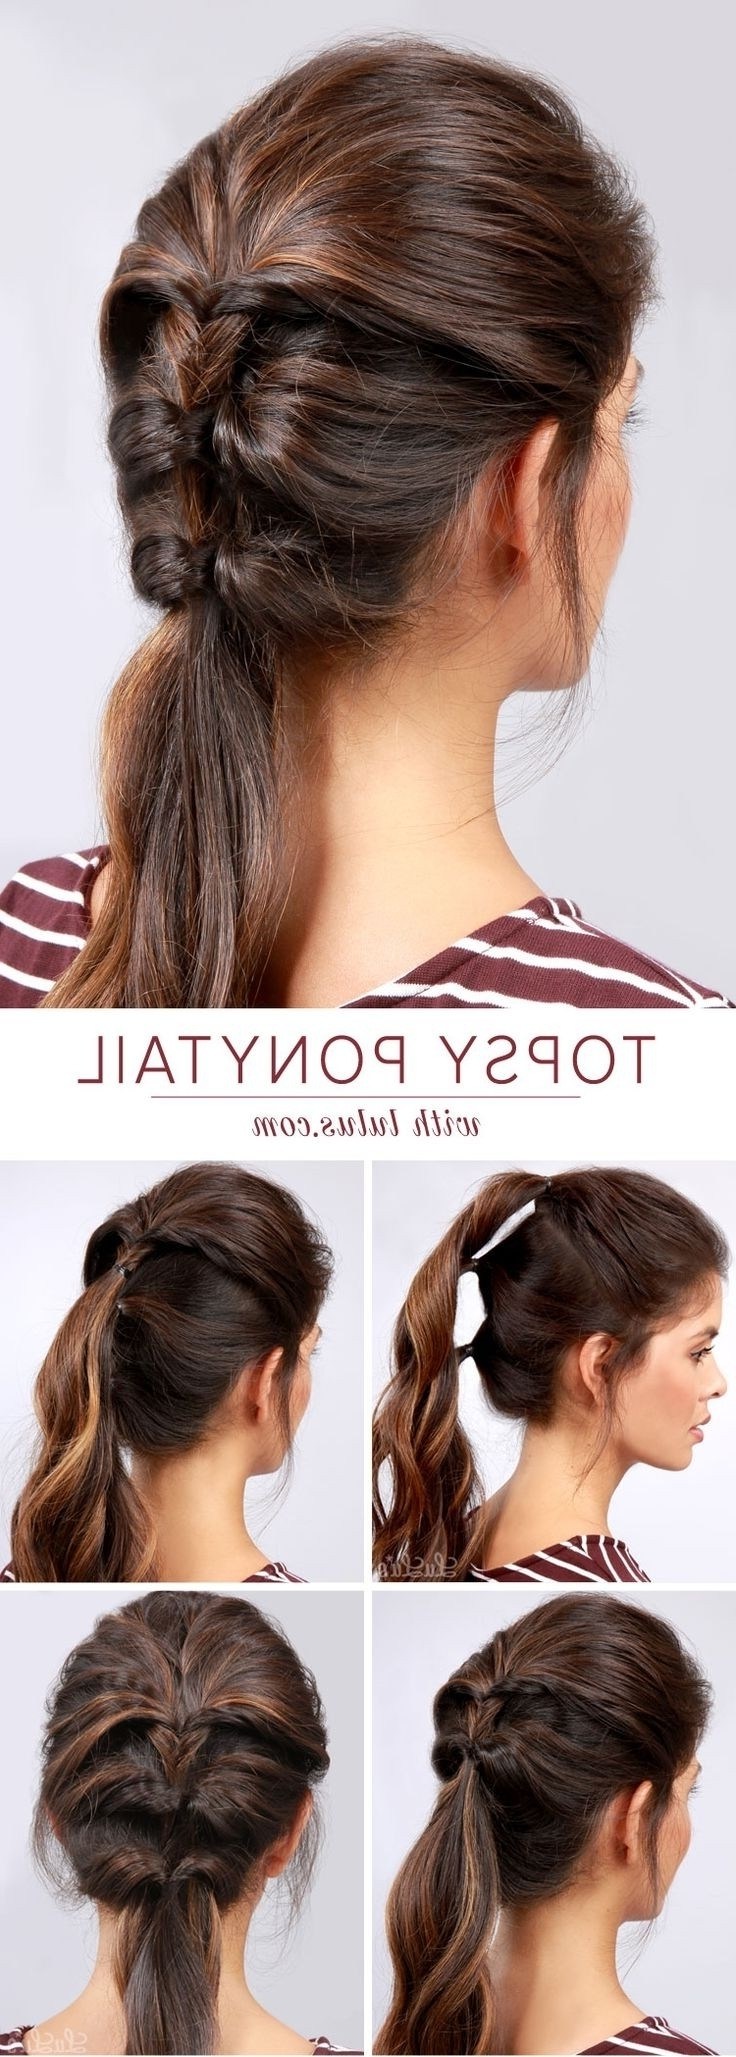 Most Current Stylish Low Pony Hairstyles With Bump In 20 Ponytail Hairstyles: Discover Latest Ponytail Ideas Now (View 11 of 20)